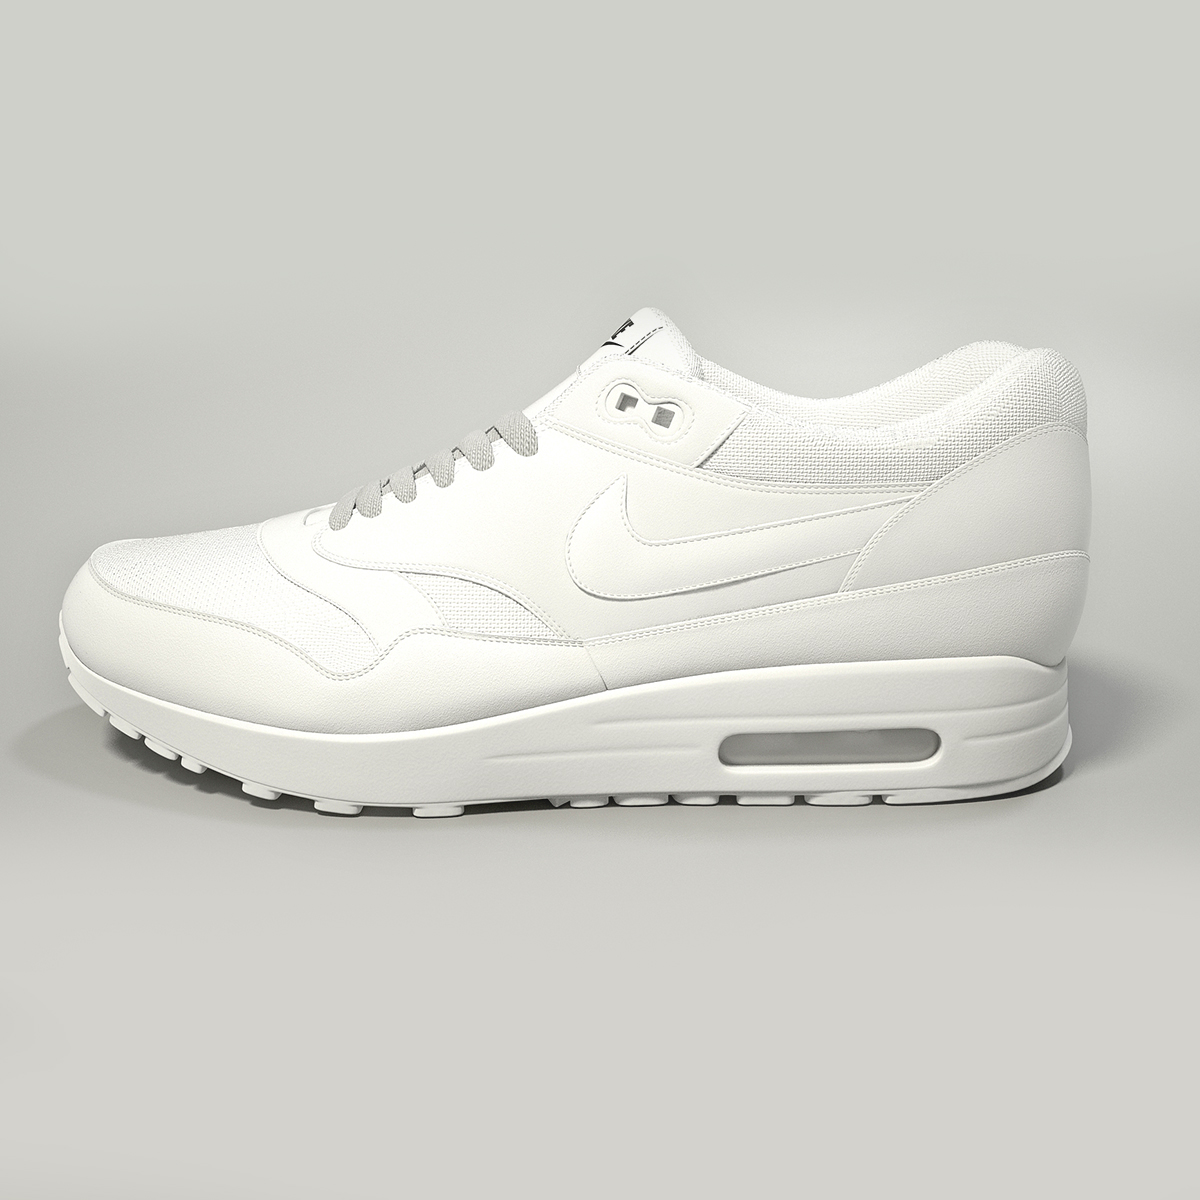 nike air max 1 3d model max obj fbx jpeg 265399